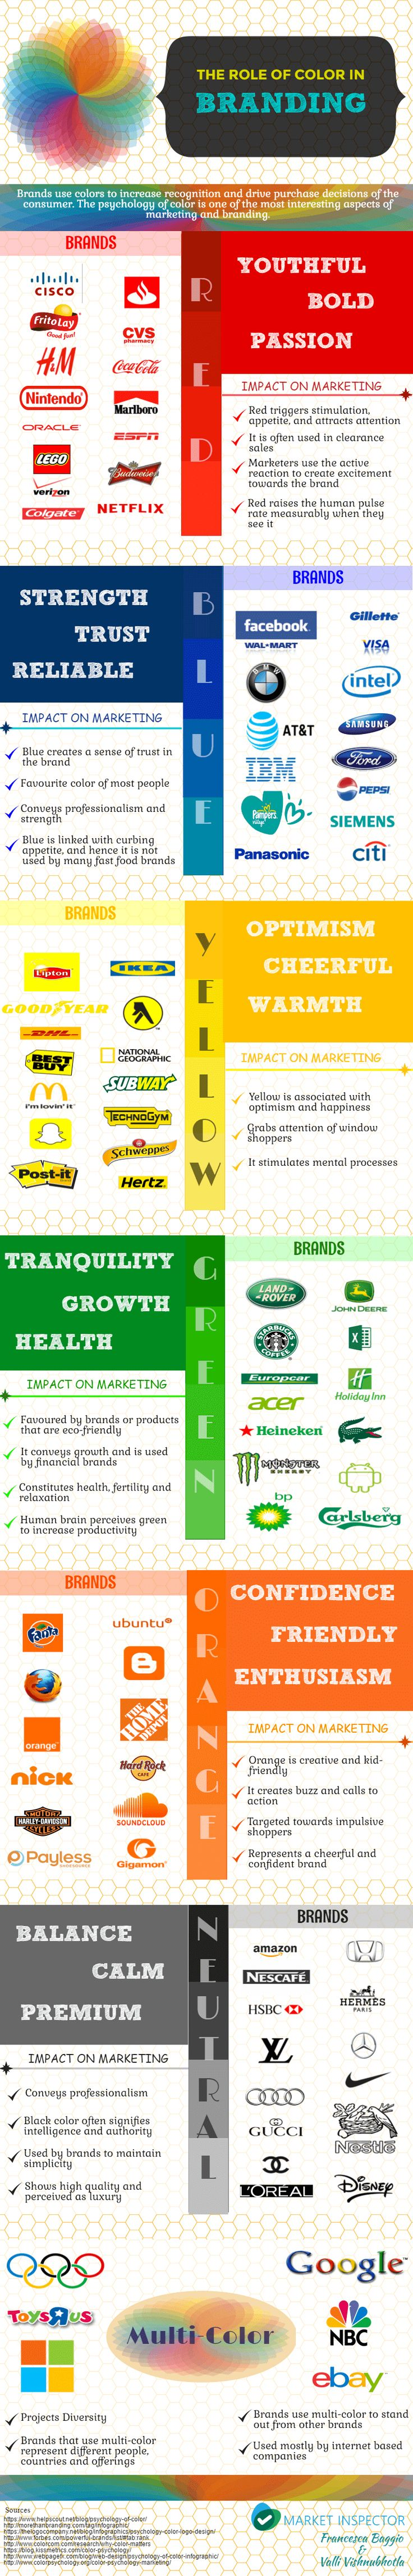 The Role of Color in Branding (Infographic) - @entmagazine